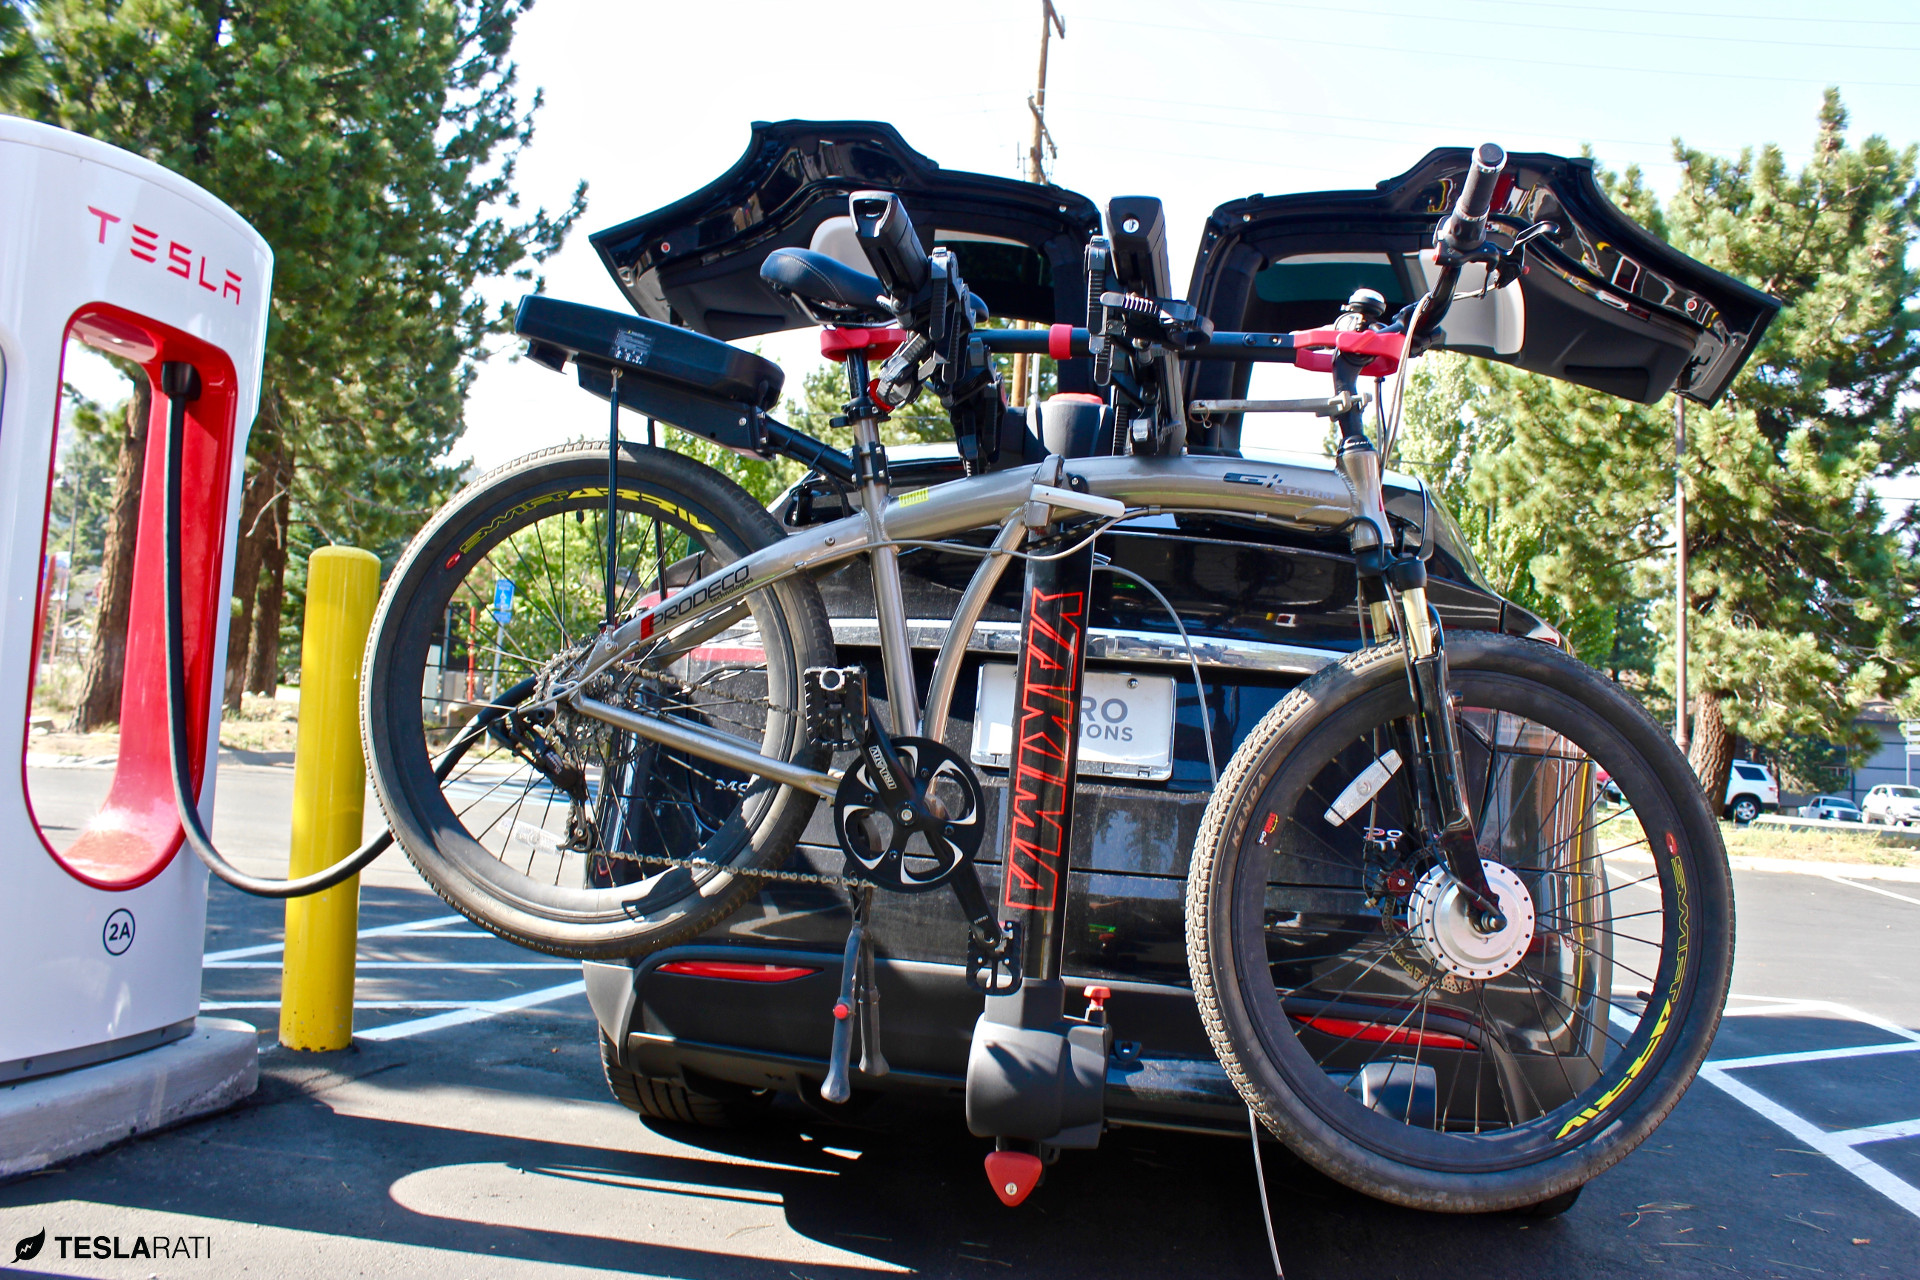 tesla supercharging model a hitch rack once you fullswing installing prodeco x can go bike